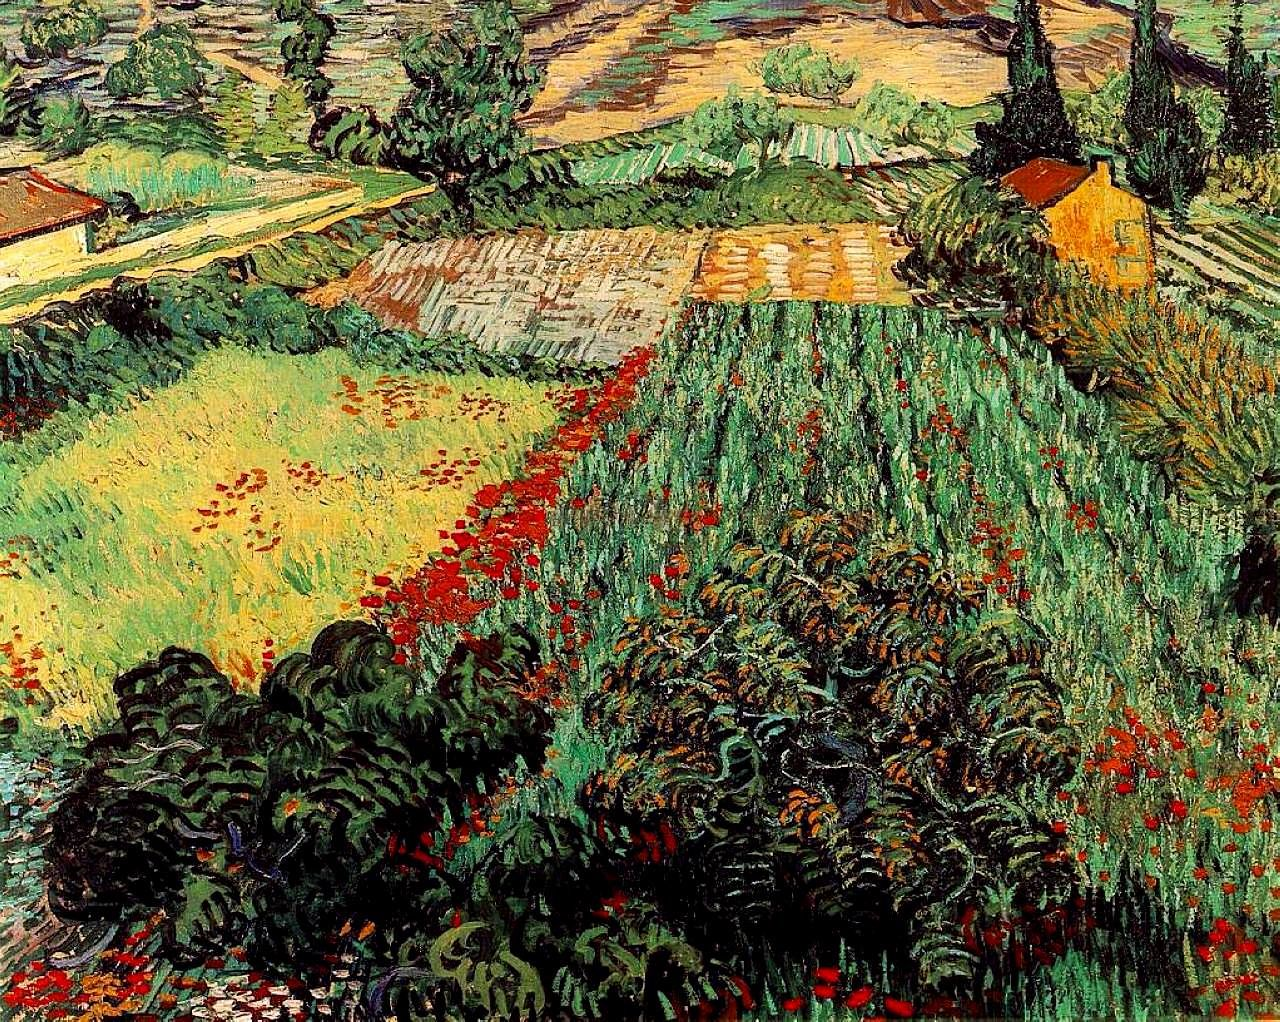 Field With Poppies 1889 Vincent Van Gogh Vincent Van Gogh Paintings Van Gogh Art Vincent Van Gogh Art